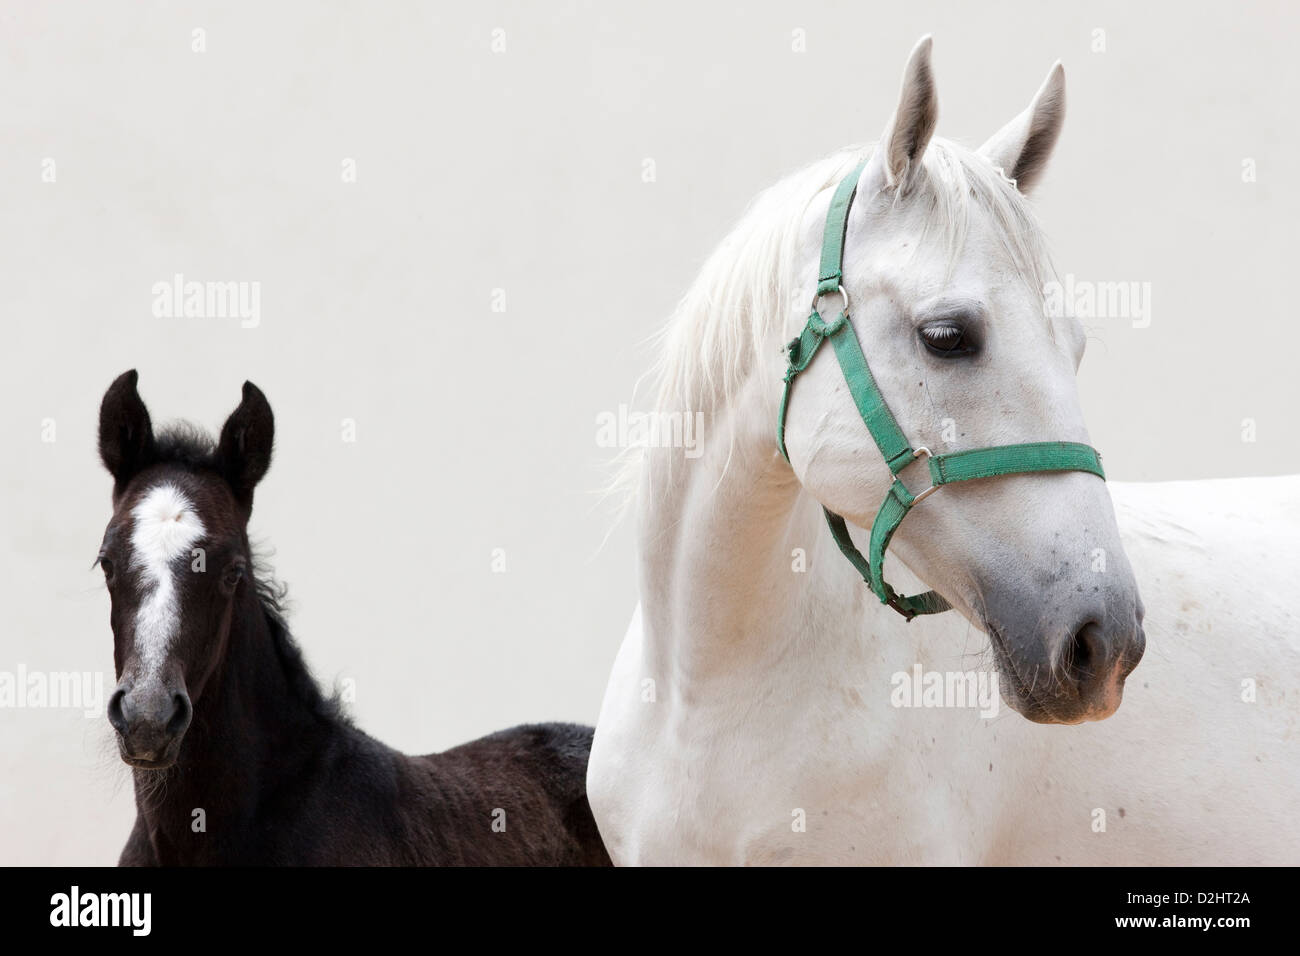 Lipizzan Horse. Portraet of mare and foal - Stock Image